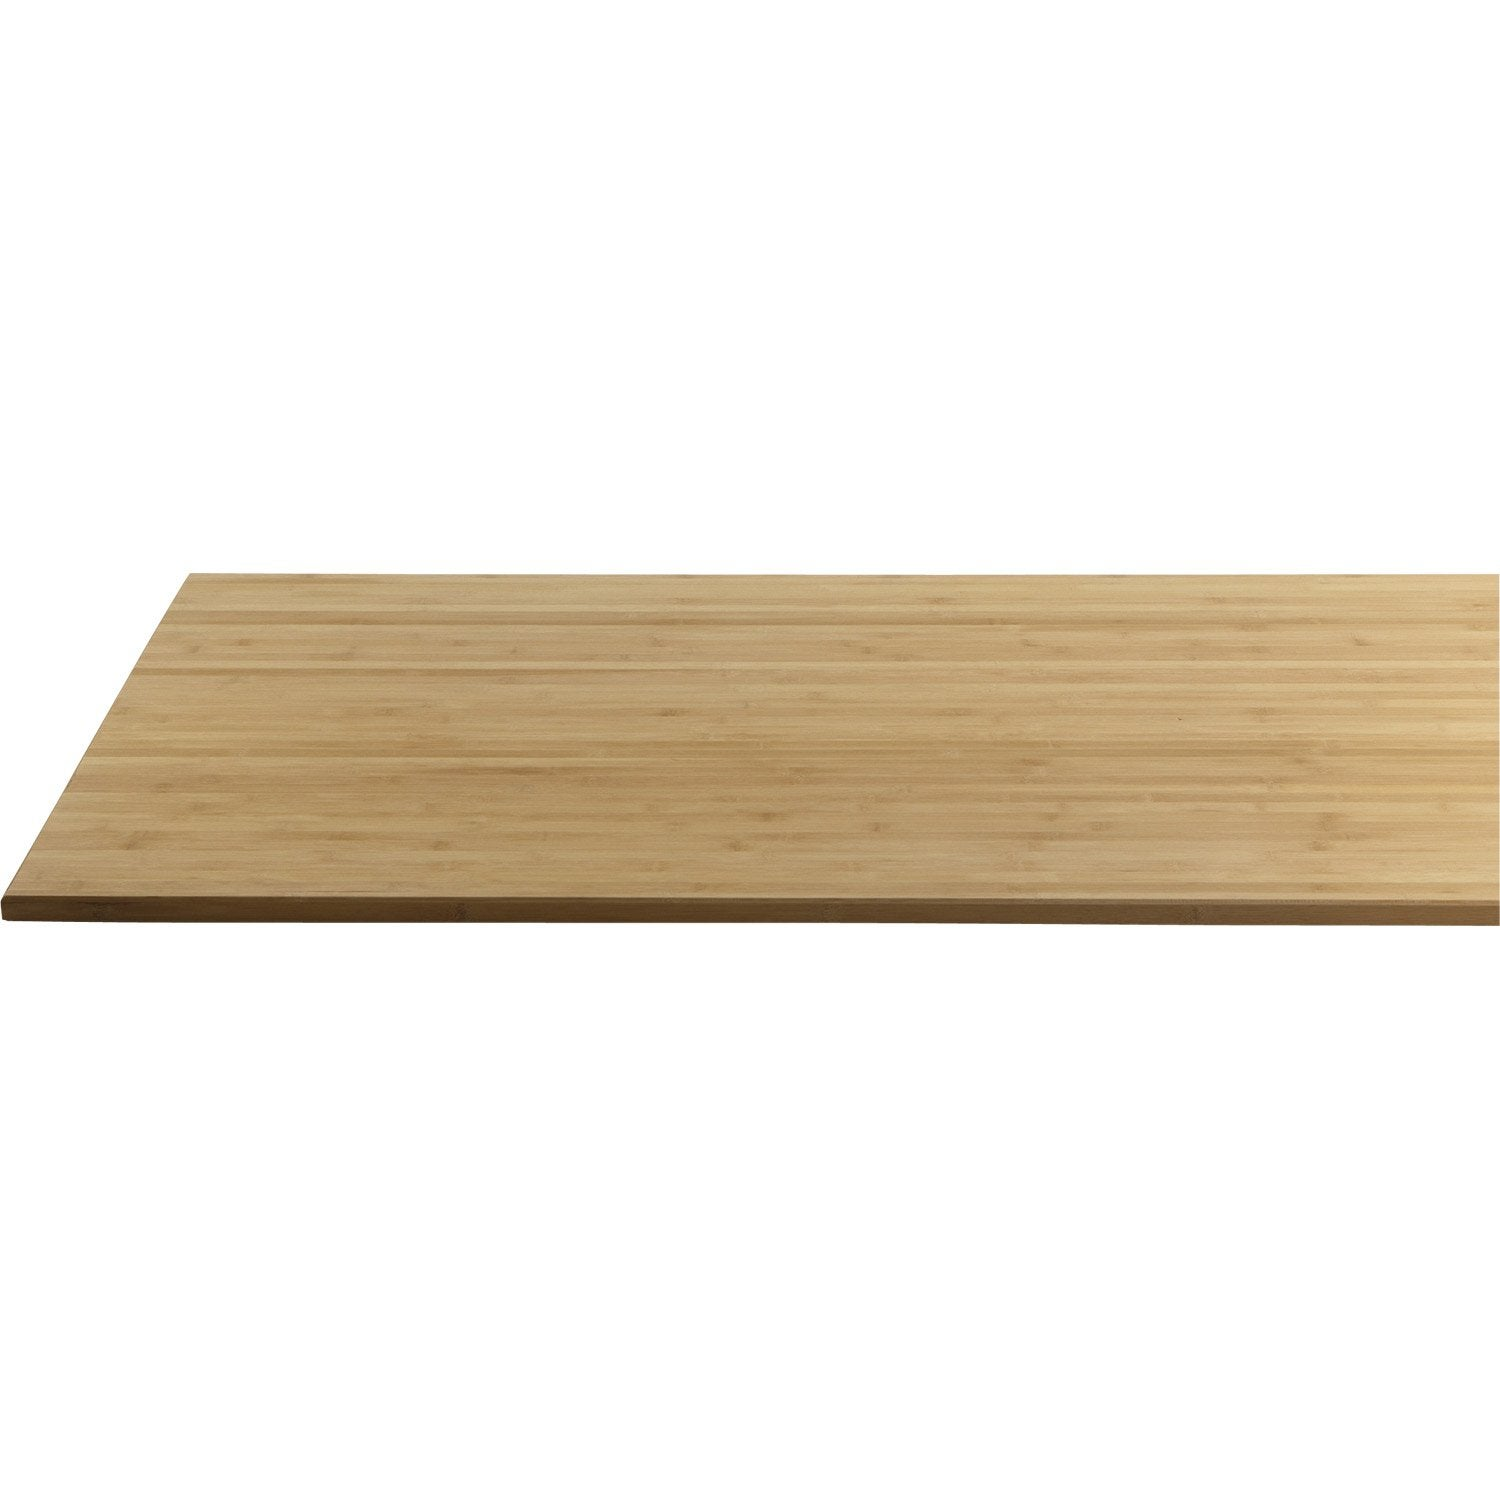 Plateau de table bambou x cm x mm for Bureau 70 cm de large